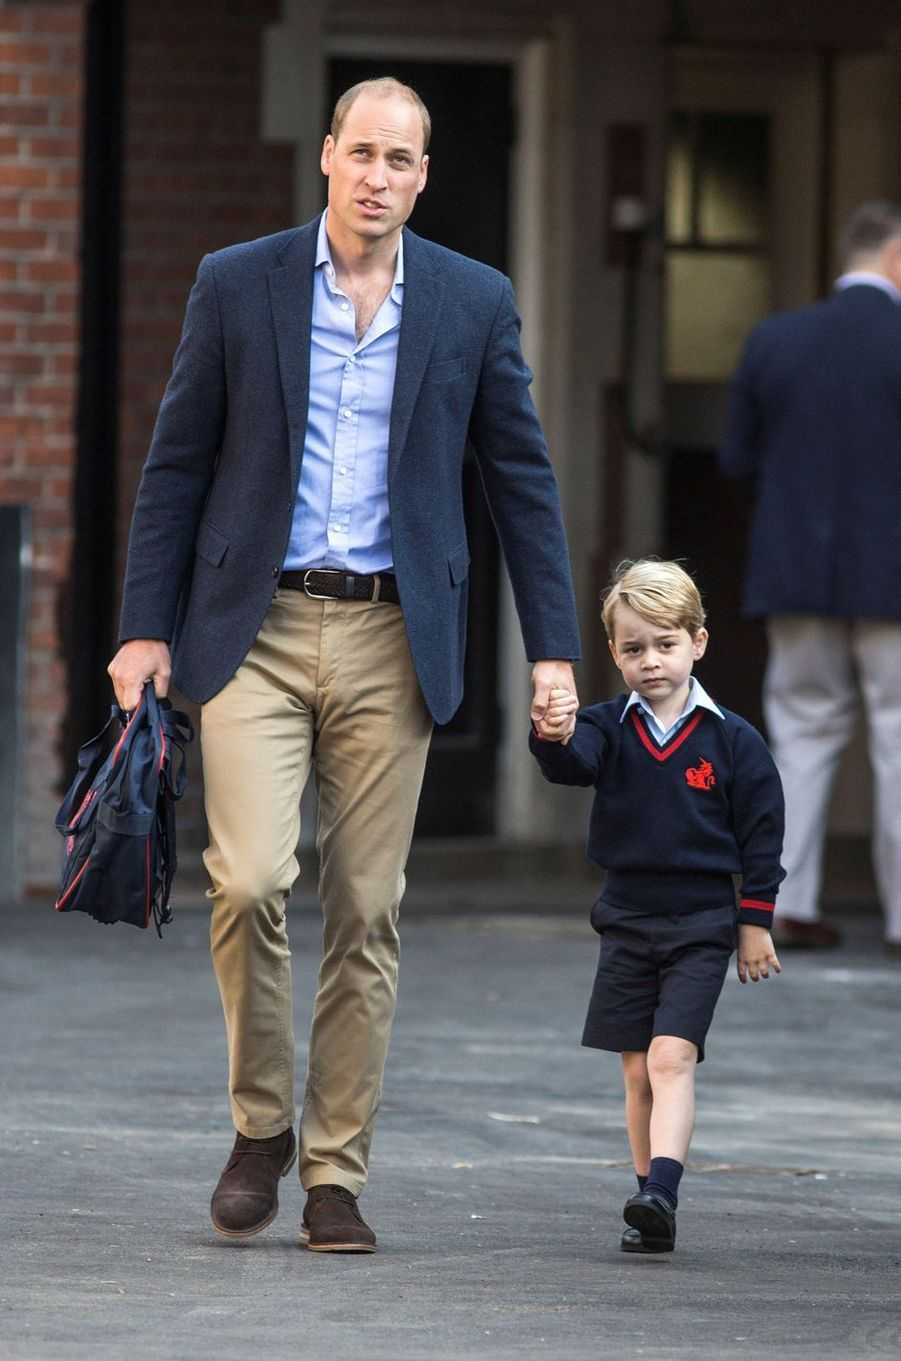 Le prince George de Cambridge arrive à la Thomas's Battersea School à Londres avec le prince William, le 7 septembre 2017